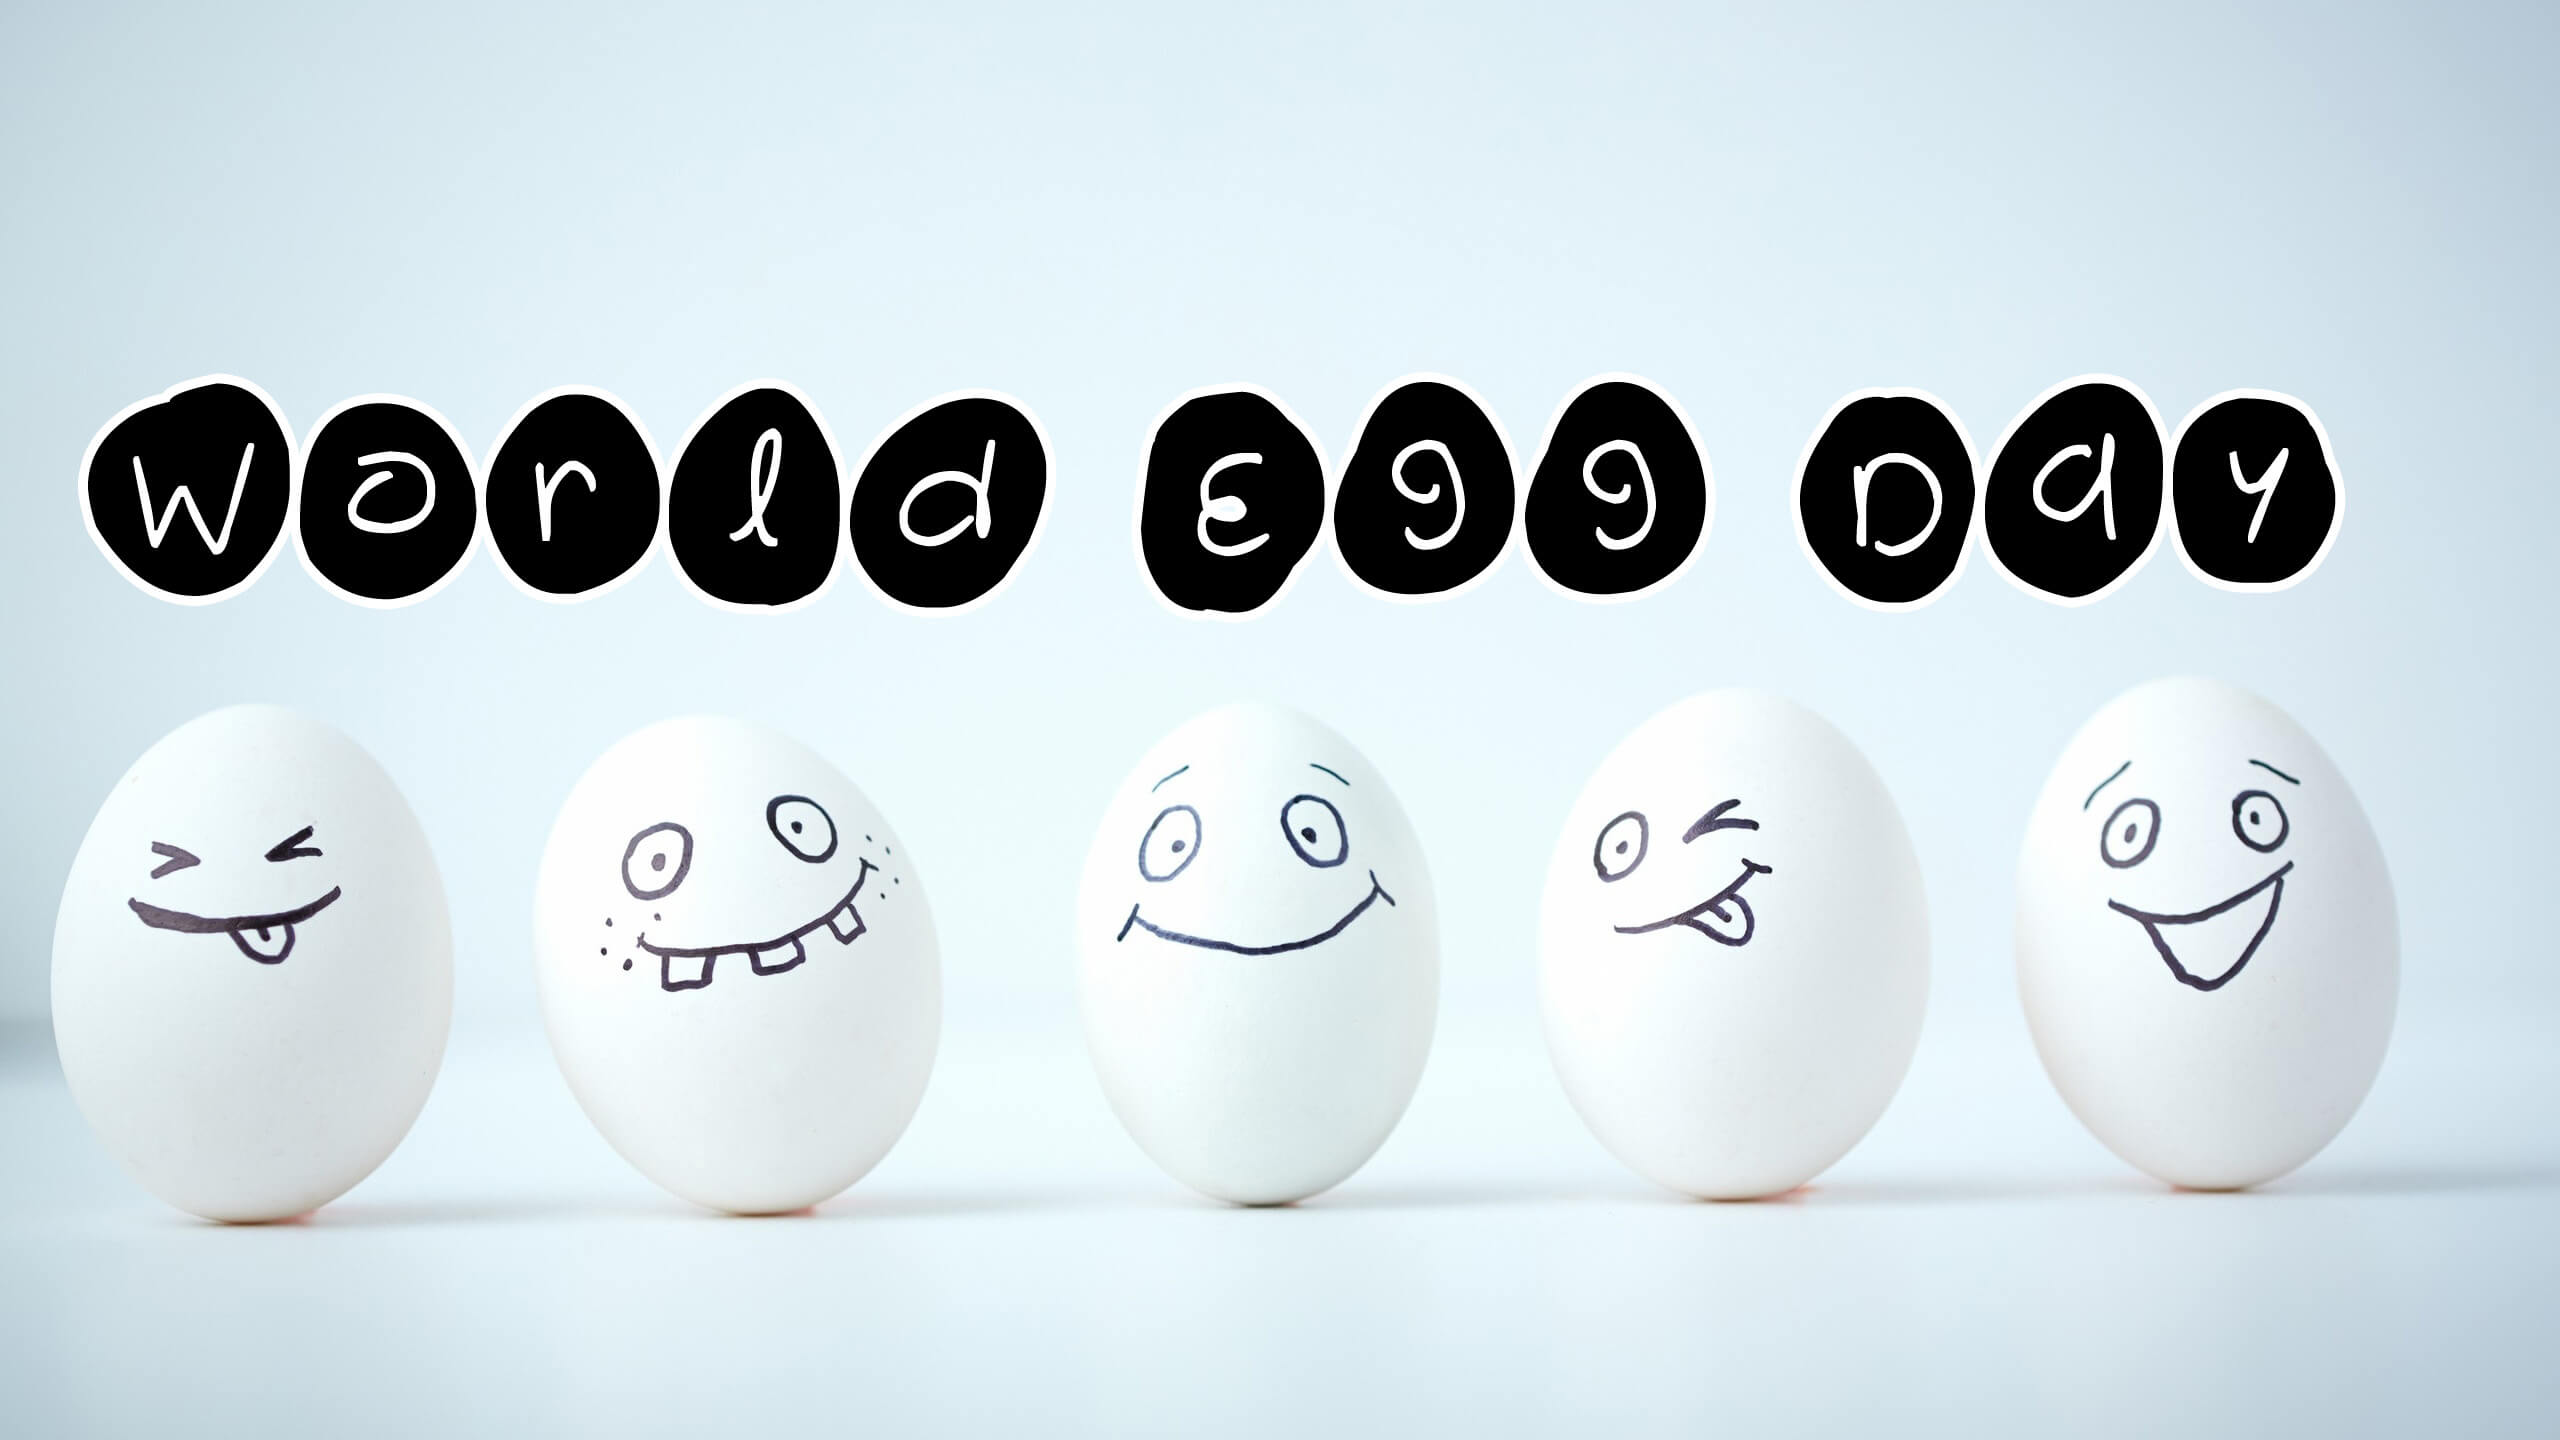 world egg day greetings smiley expressions white eggs pc hd wallpaper